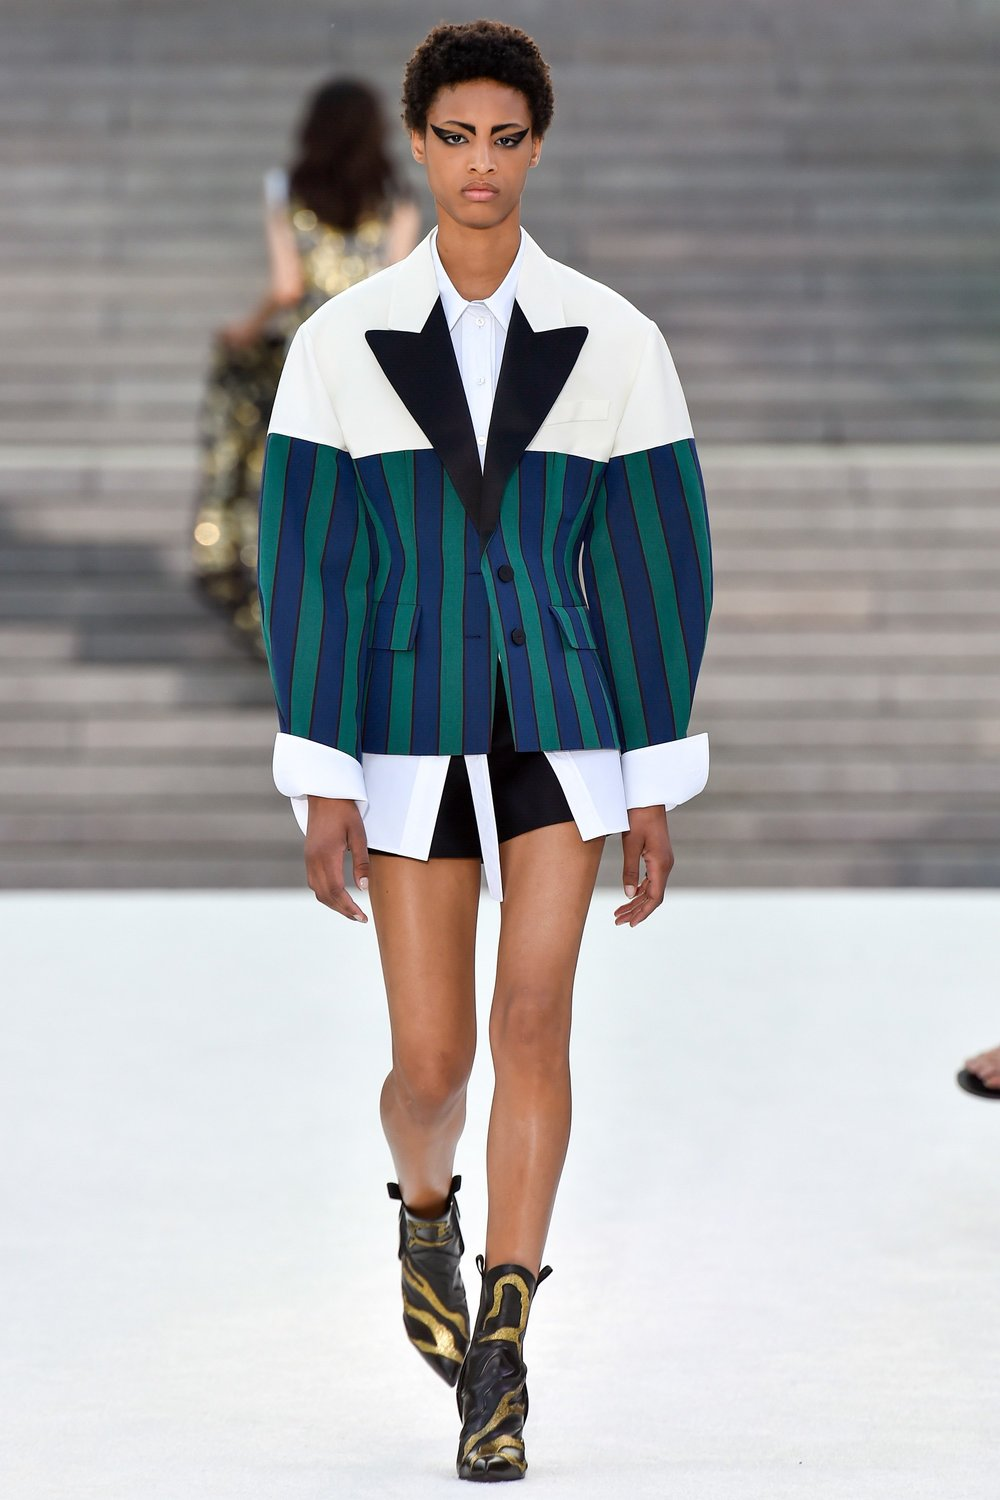 Since the old days at Balenciaga, Nicolas Ghesquière's tailoring has been influential. It commanded most of the attention here. He indicated that the oversized, yet hourglass blazers near the end of the show were inspired by traditional Japanese styles, while the rounded, standout shoulder lines on a series of short-sleeved jackets seemed to nod backwards at a collection he did in the late aughts. But mostly he preferred a boyish, cropped style with a hem that barely grazed the hips and shortened sleeves. -Vogue -